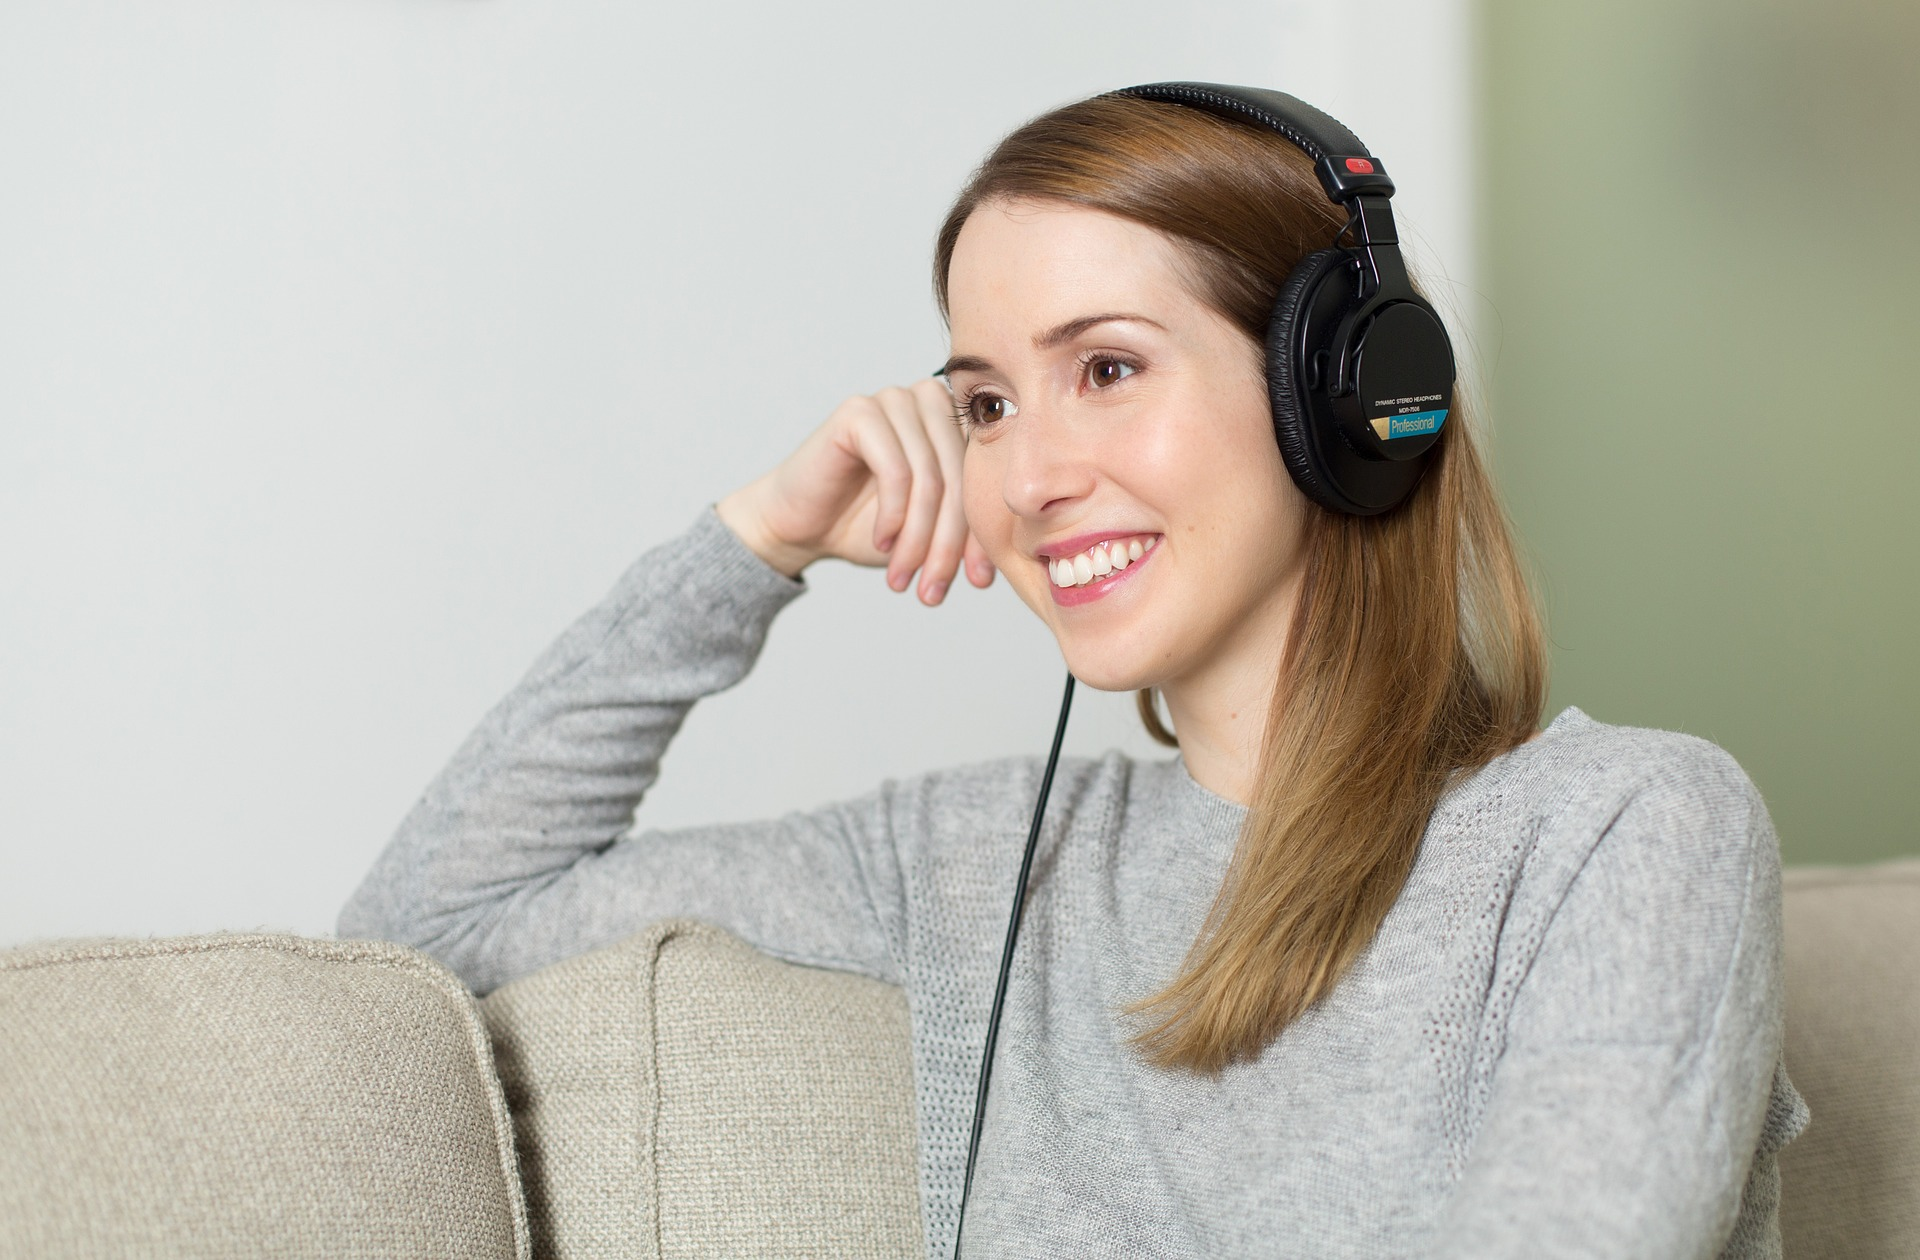 The Best Motivational Podcasts For Career Development